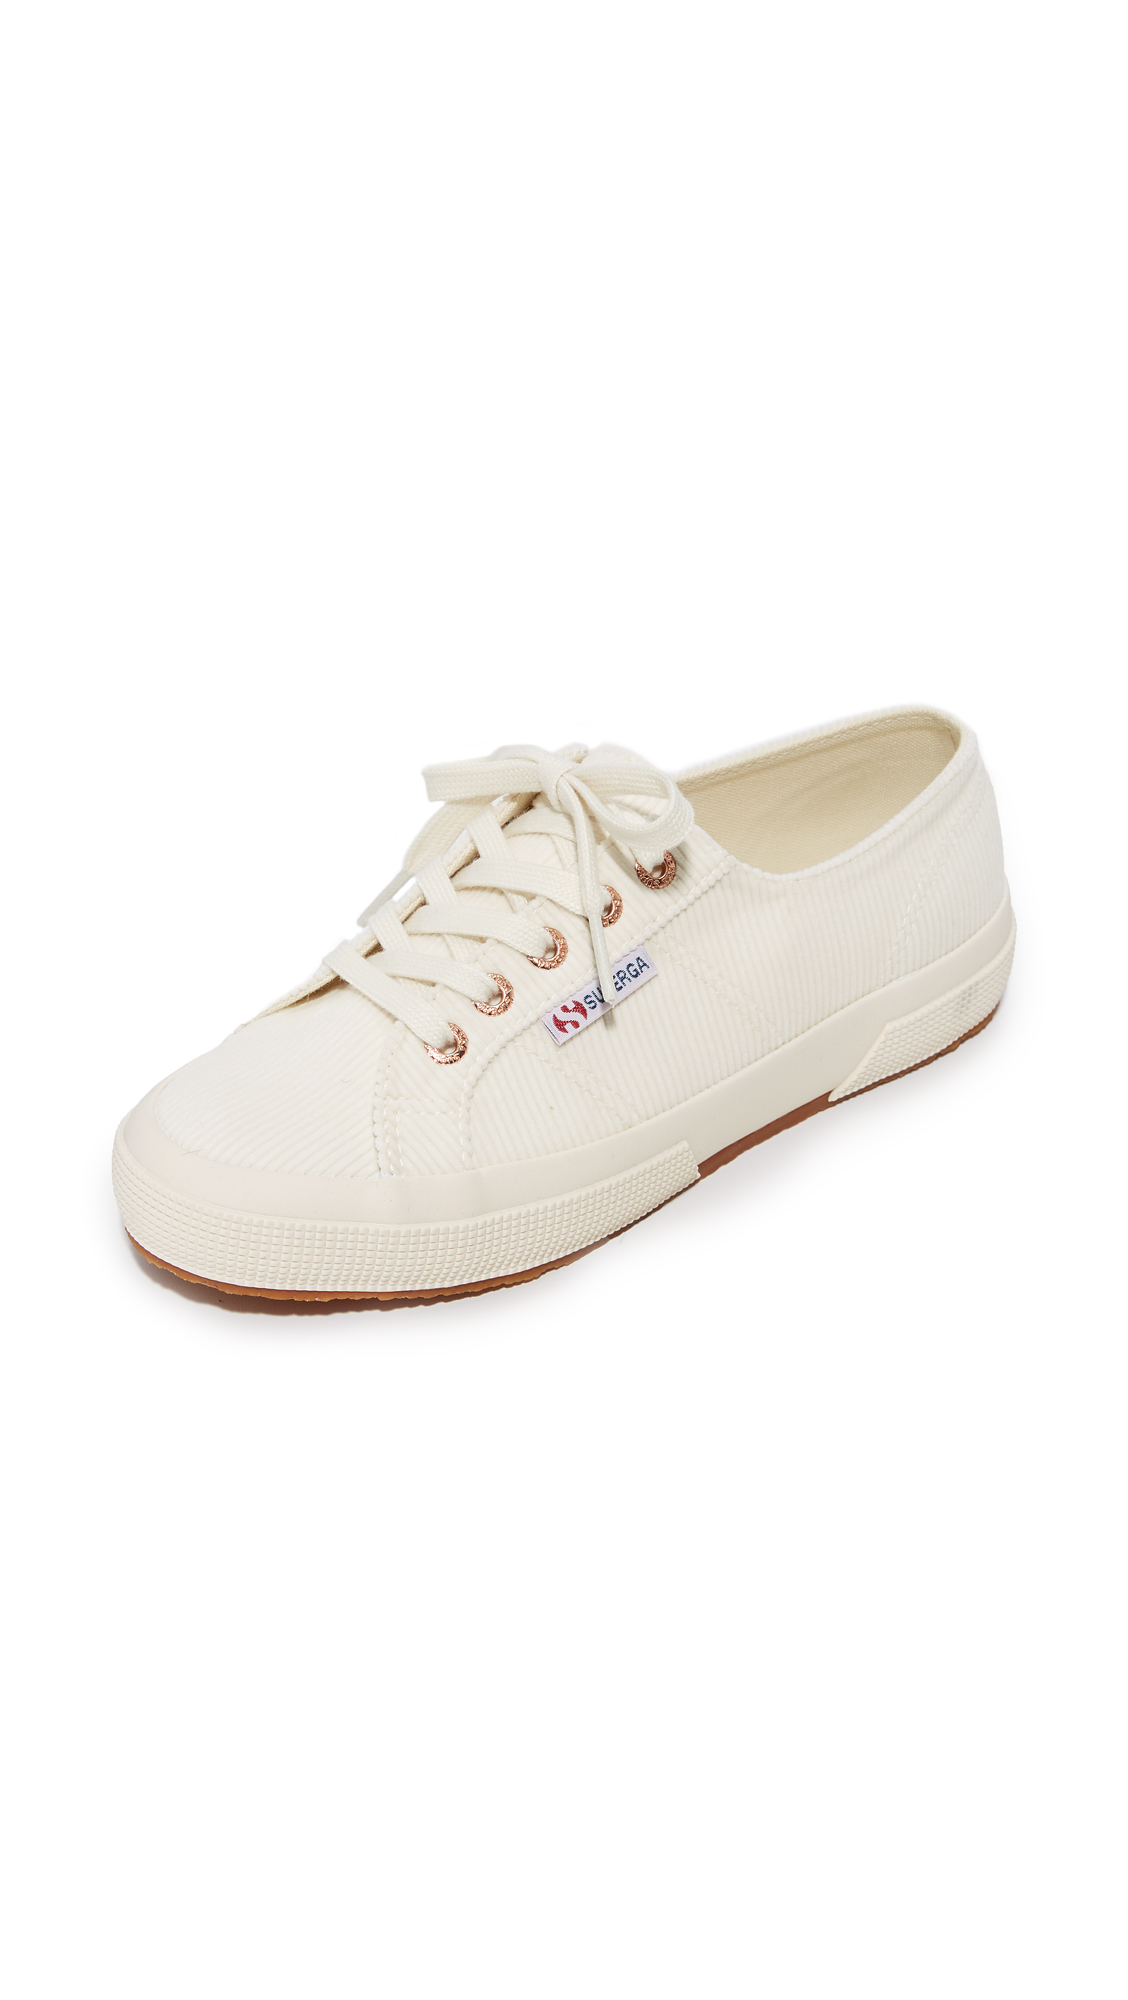 Superga 2750 Corduroy Classic Sneakers - Ivory/Gold